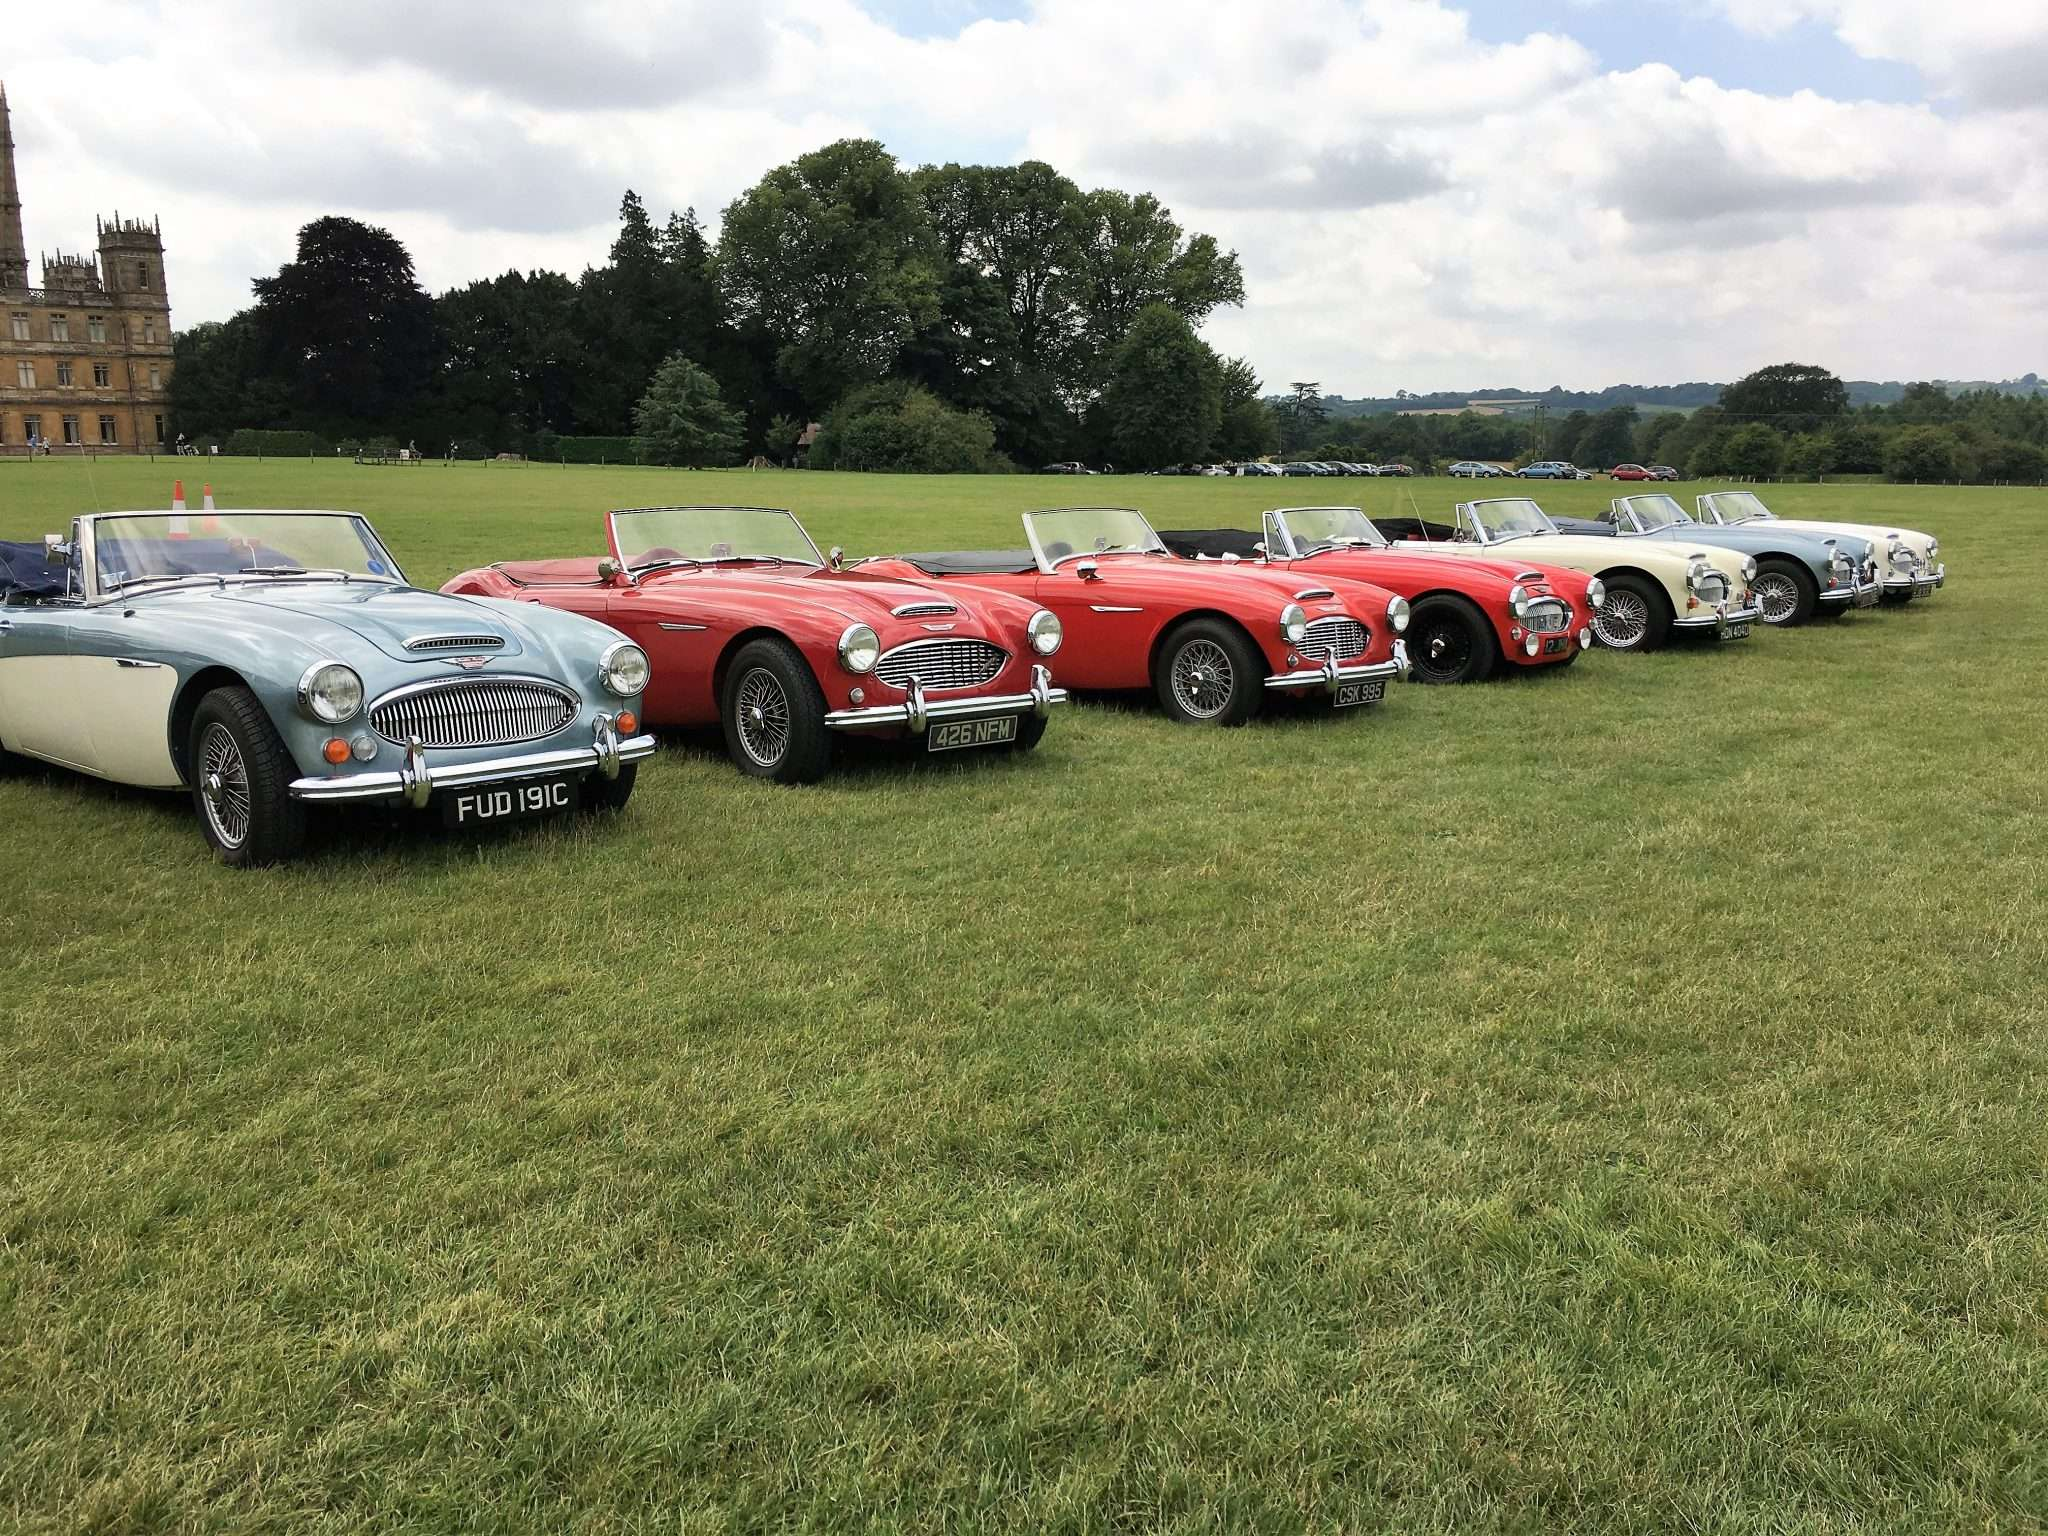 A line up of classic cars in a field